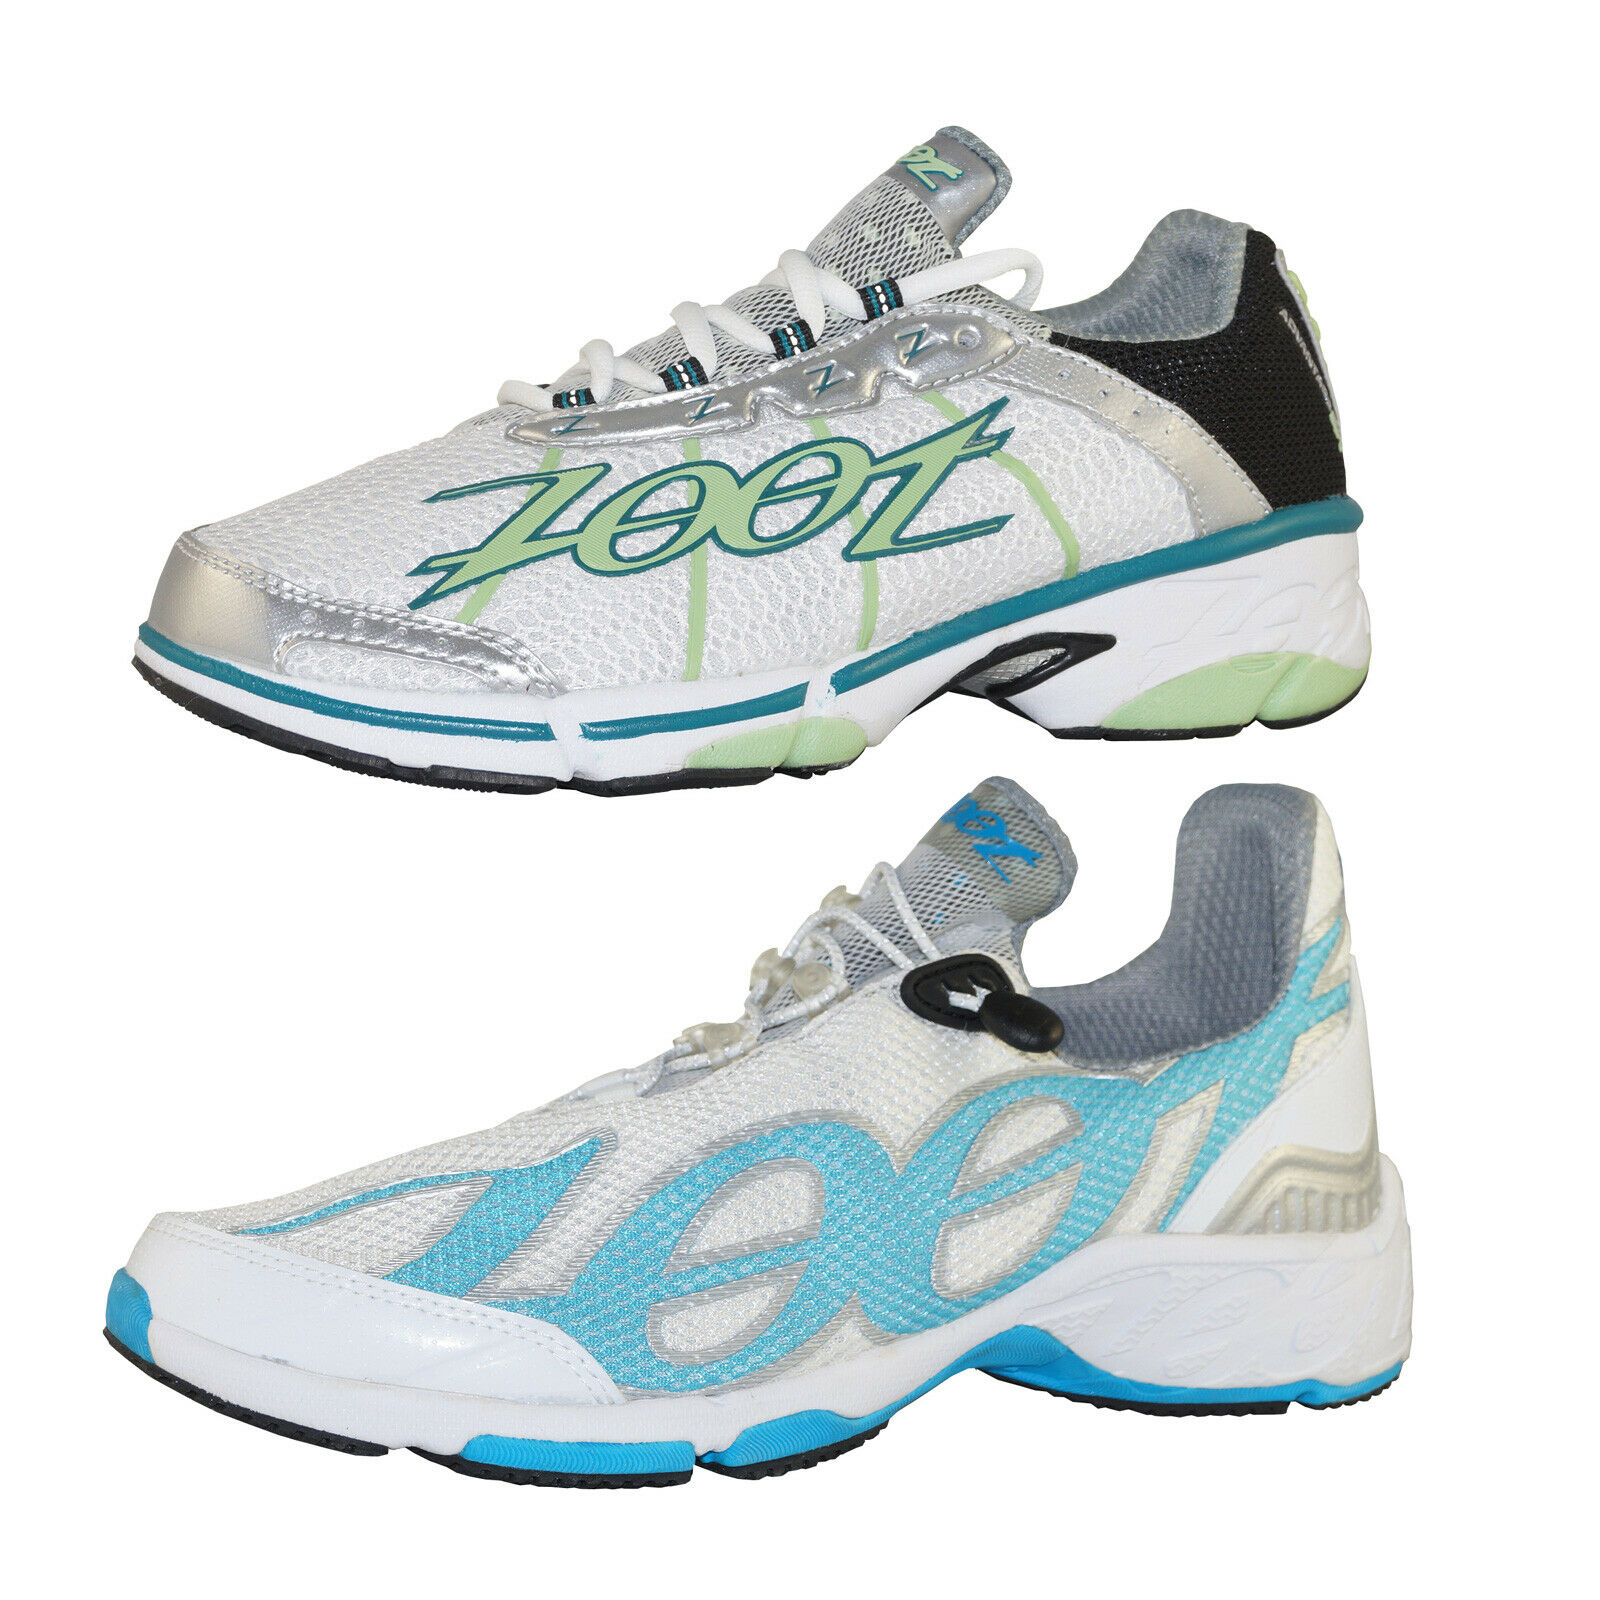 Zoot Advantage 1.2.0 Scarpe  Runninghoes Triathlon Trainers donna bianca SALE  Felice shopping